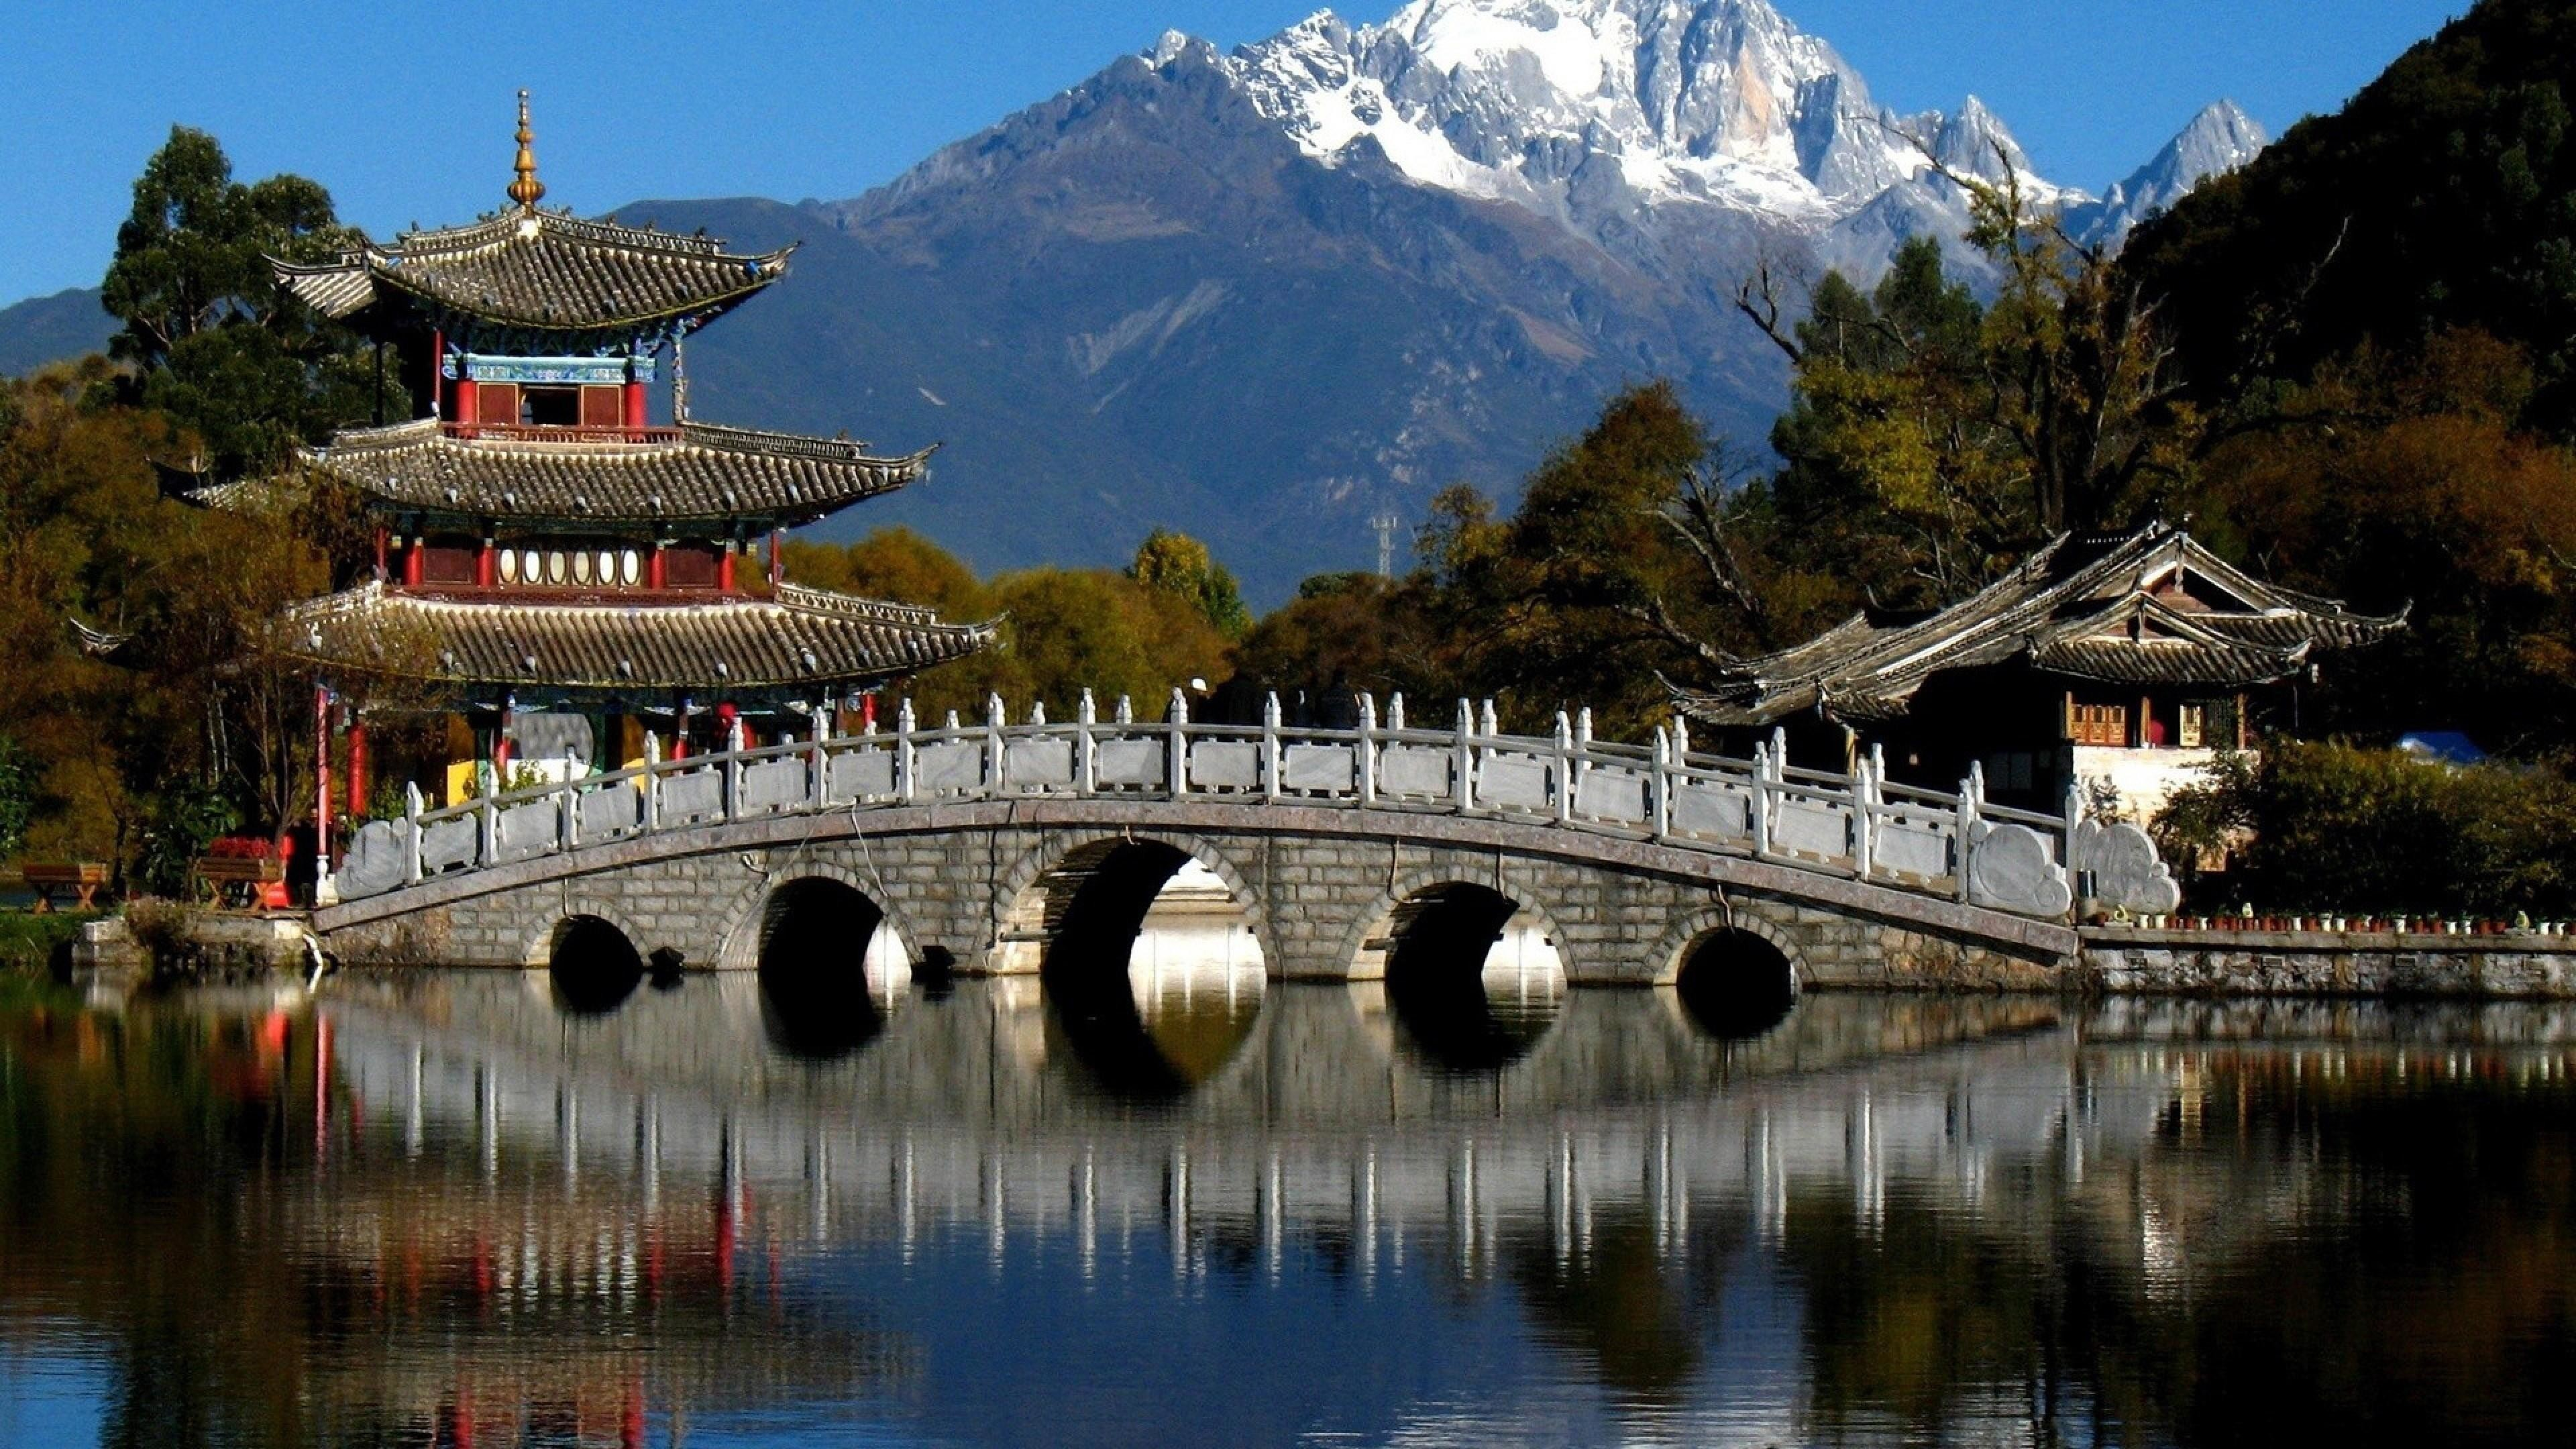 Res: 3840x2160, Black Dragon Pool Park, Lijiang, China Wallpaper | Wallpaper Studio 10 |  Tens of thousands HD and UltraHD wallpapers for Android, Windows and Xbox